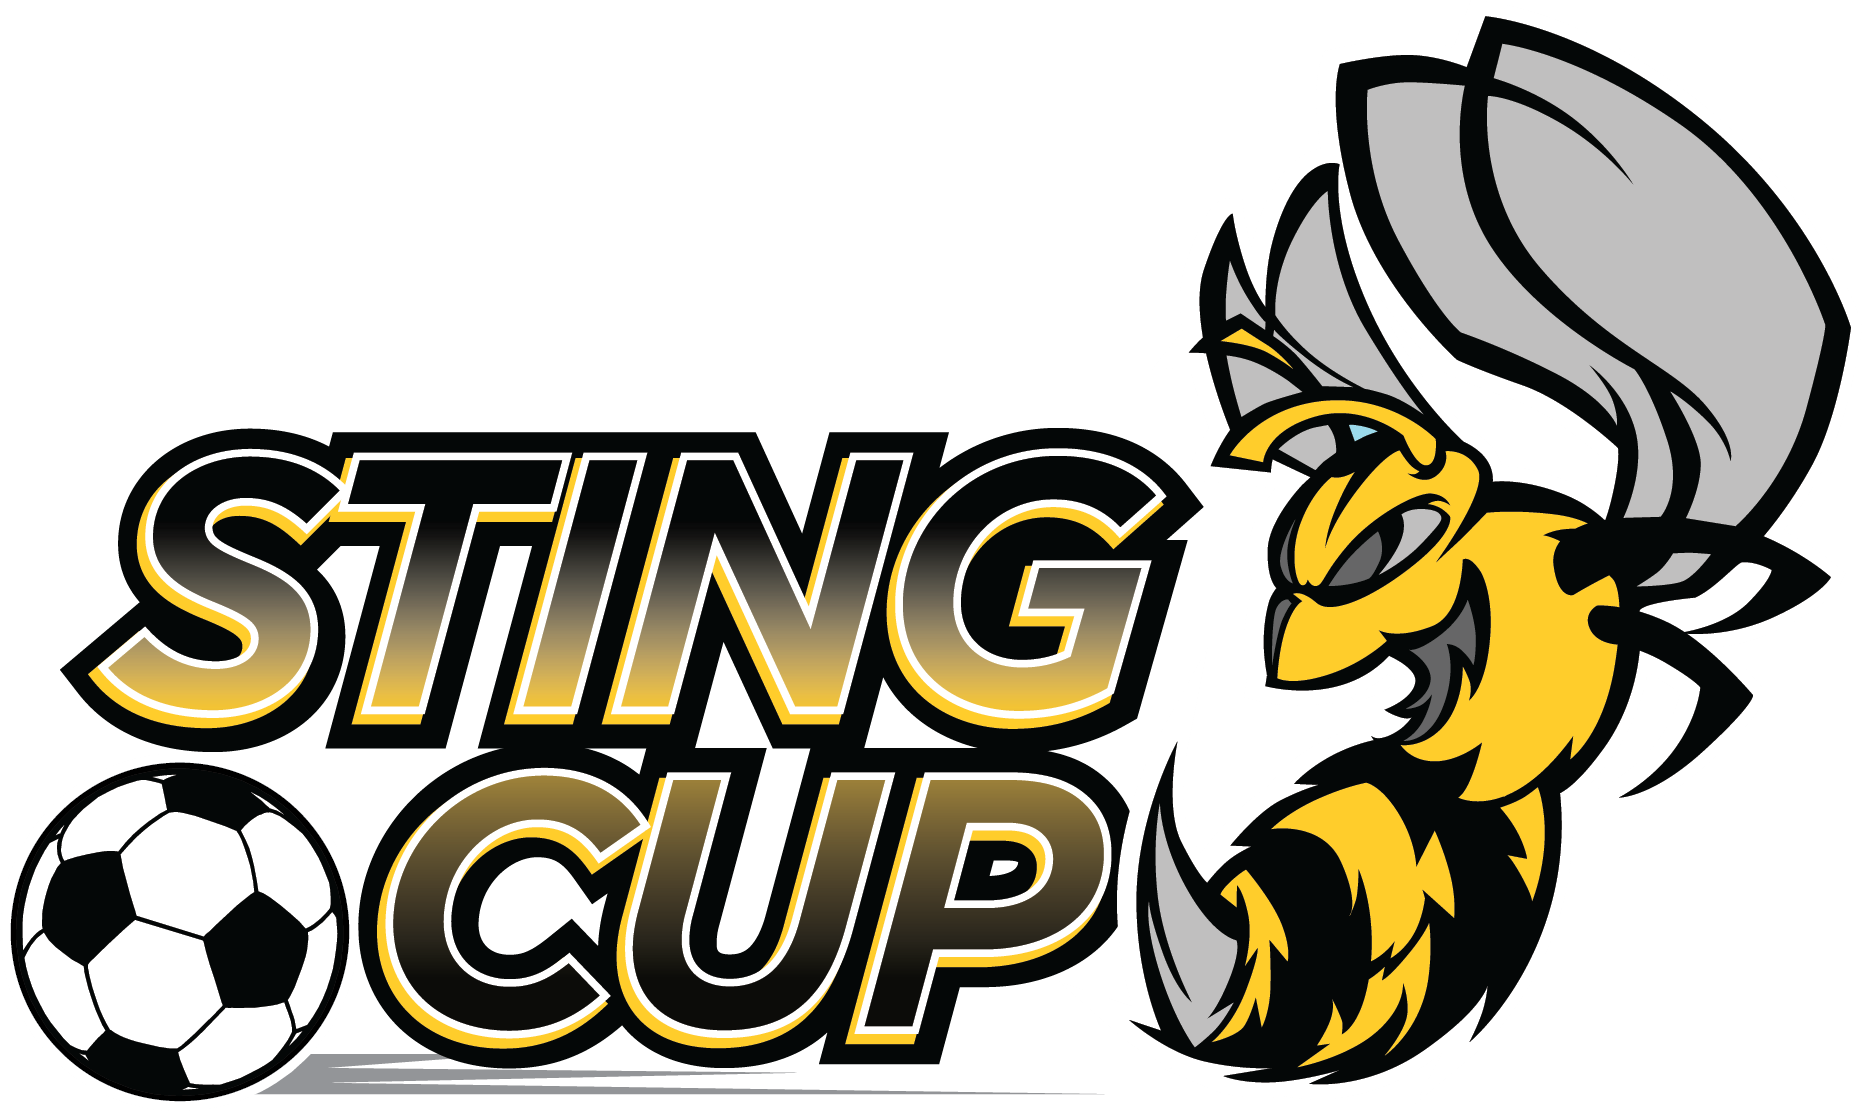 sting cup banner 2